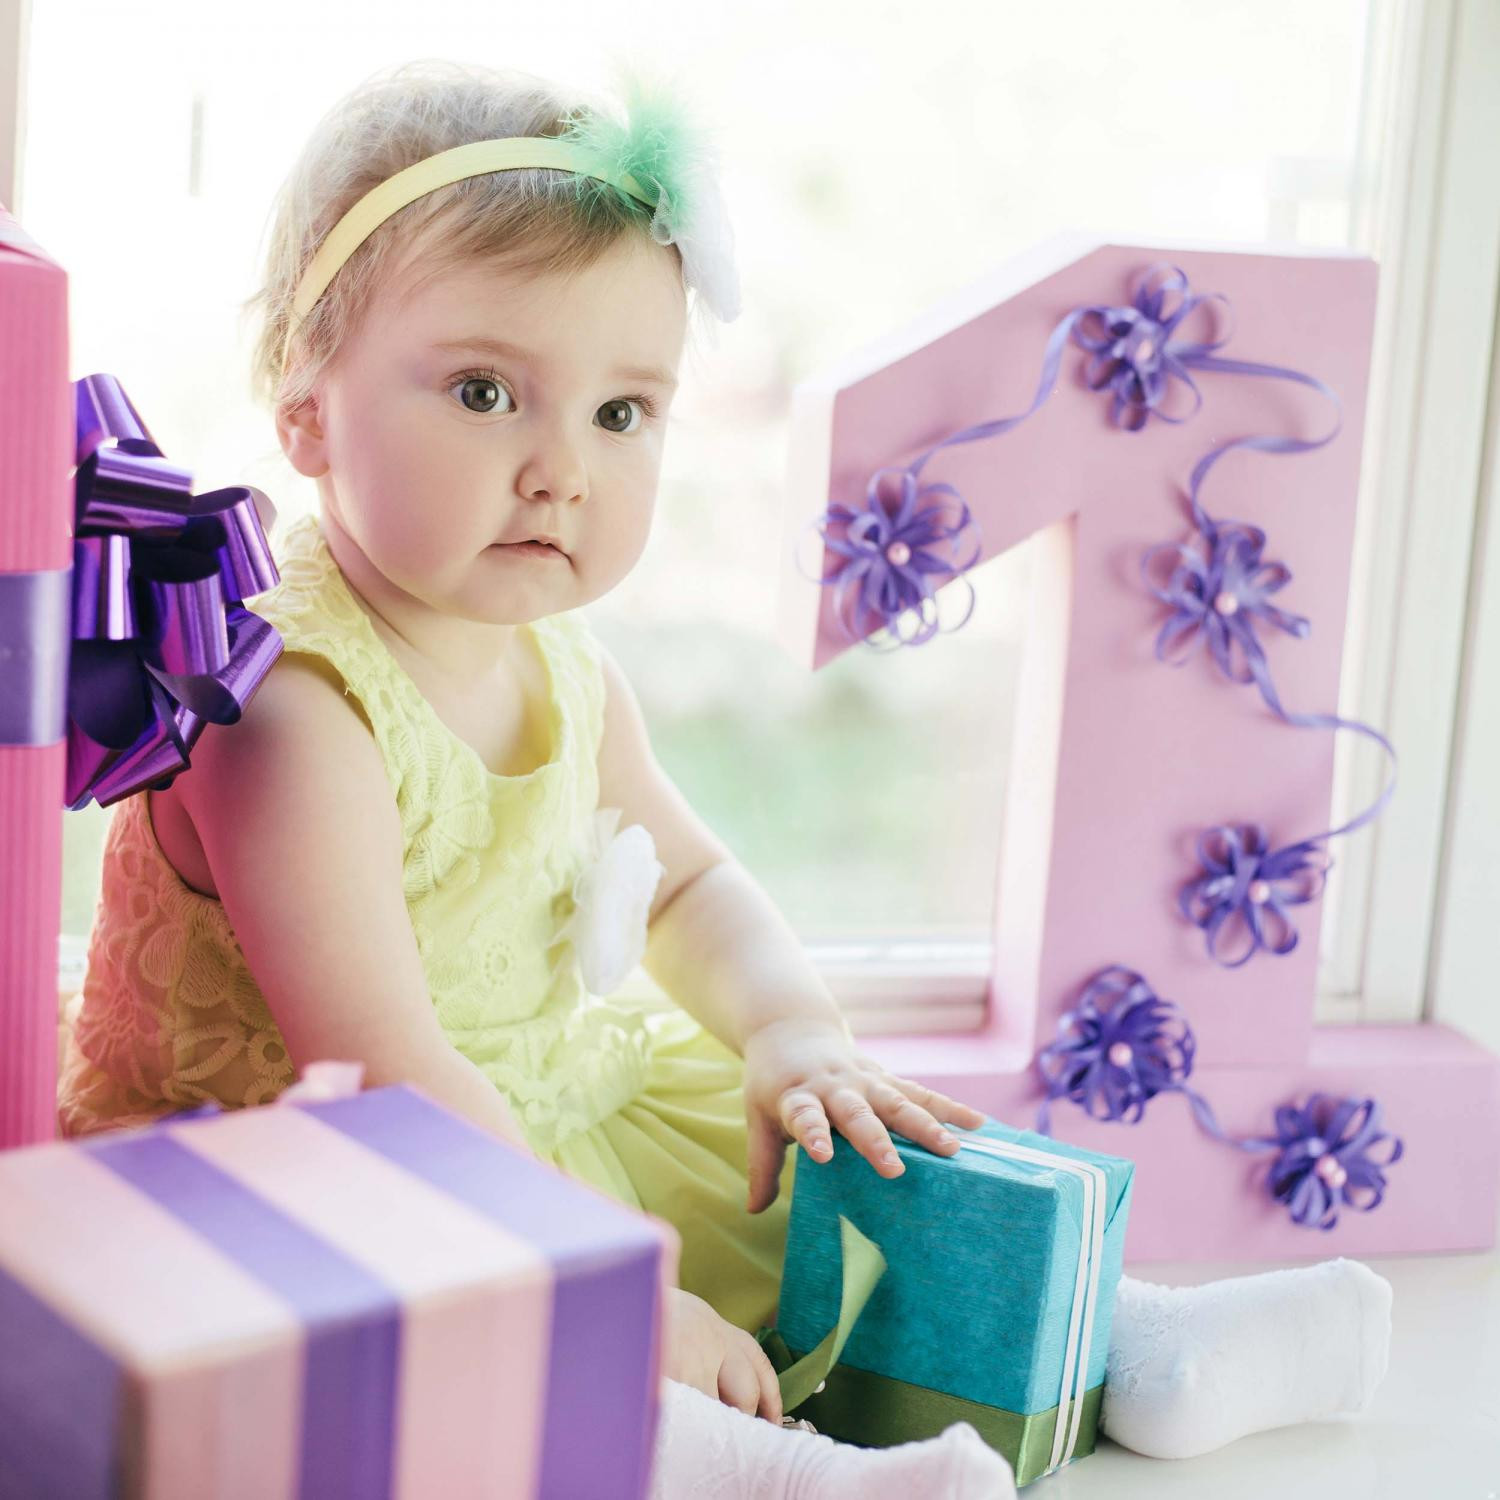 Best ideas about Baby's First Birthday Party Ideas . Save or Pin First Birthday Party Ideas Now.